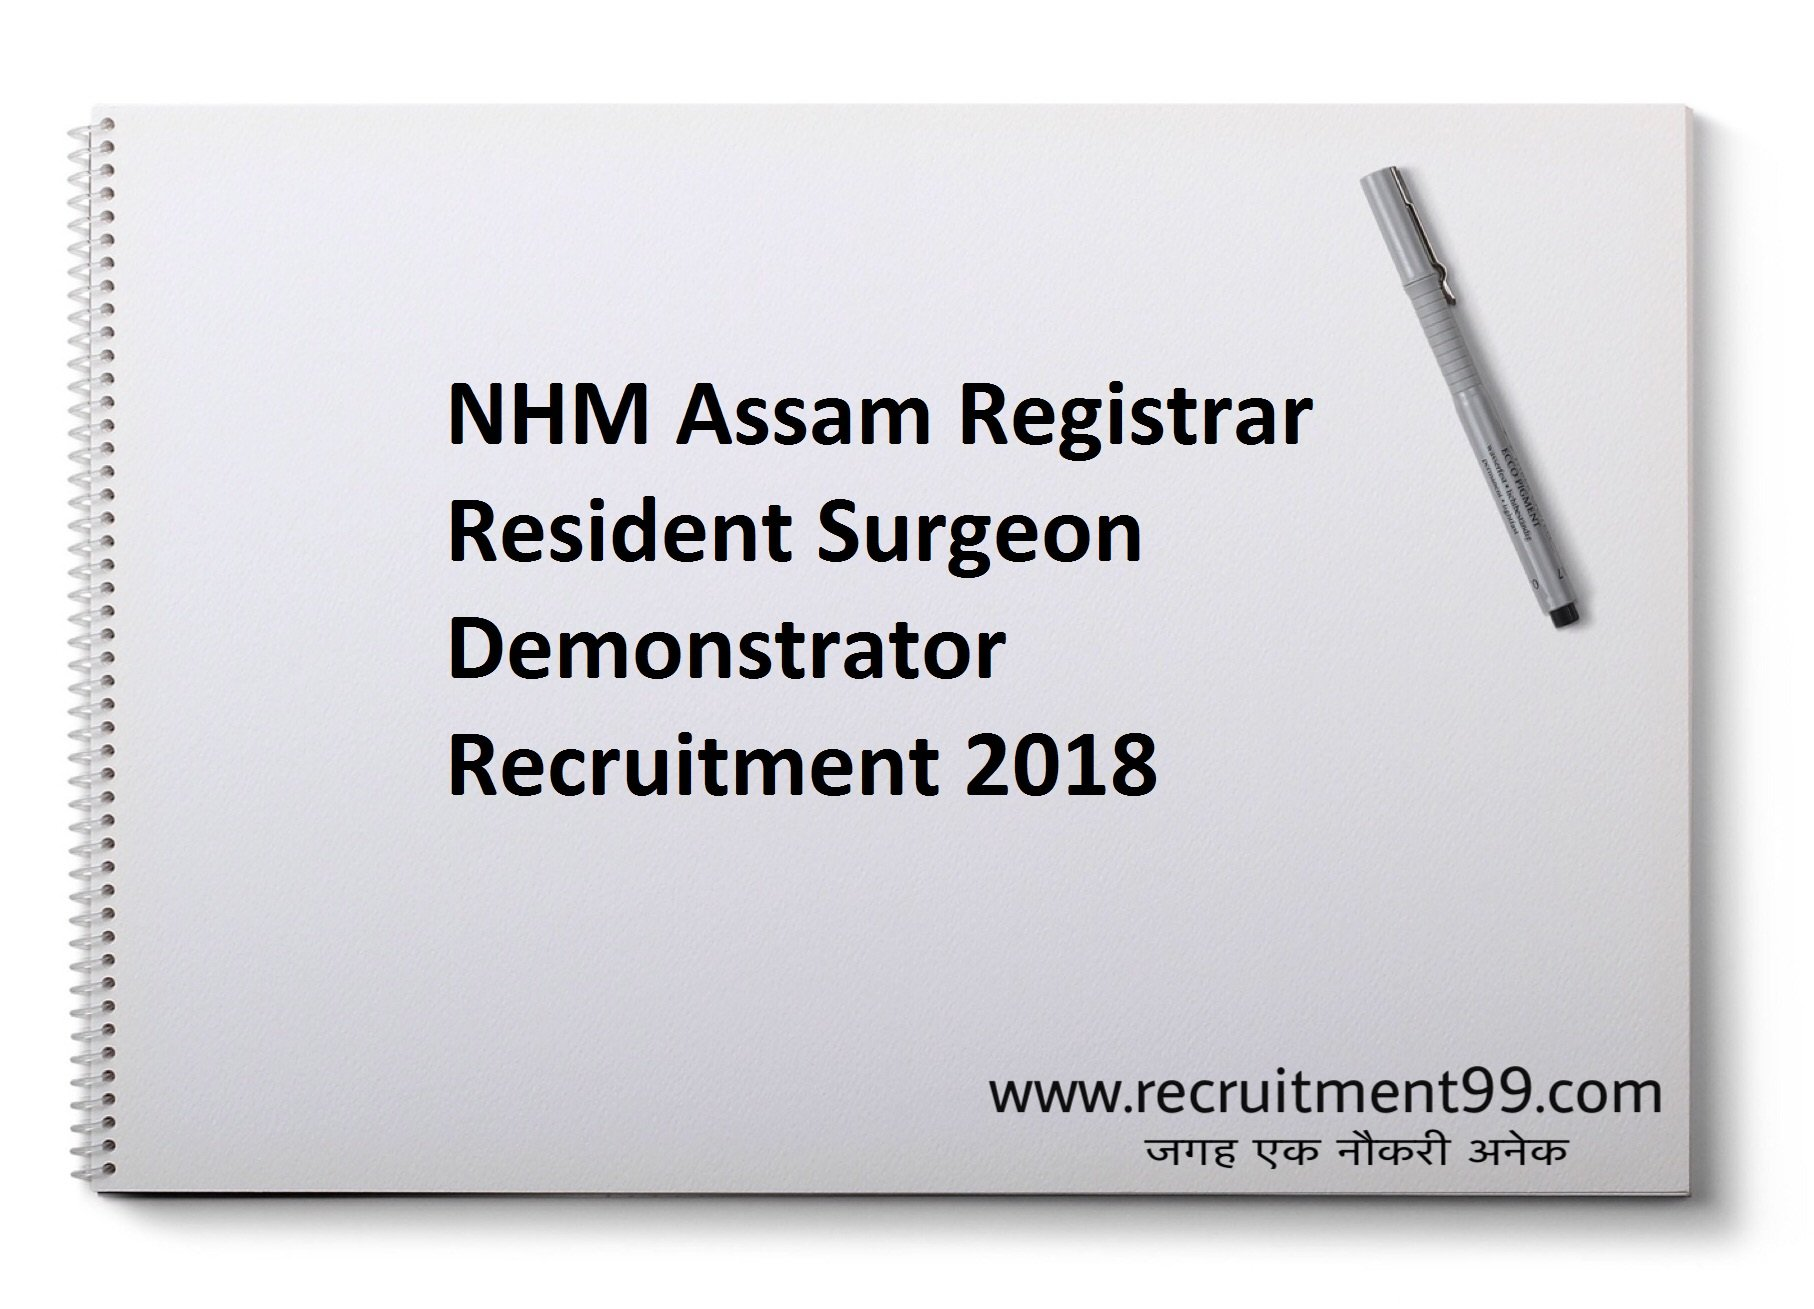 NHM Assam Registrar Resident Surgeon Demonstrator Recruitment Admit Card Result 2018